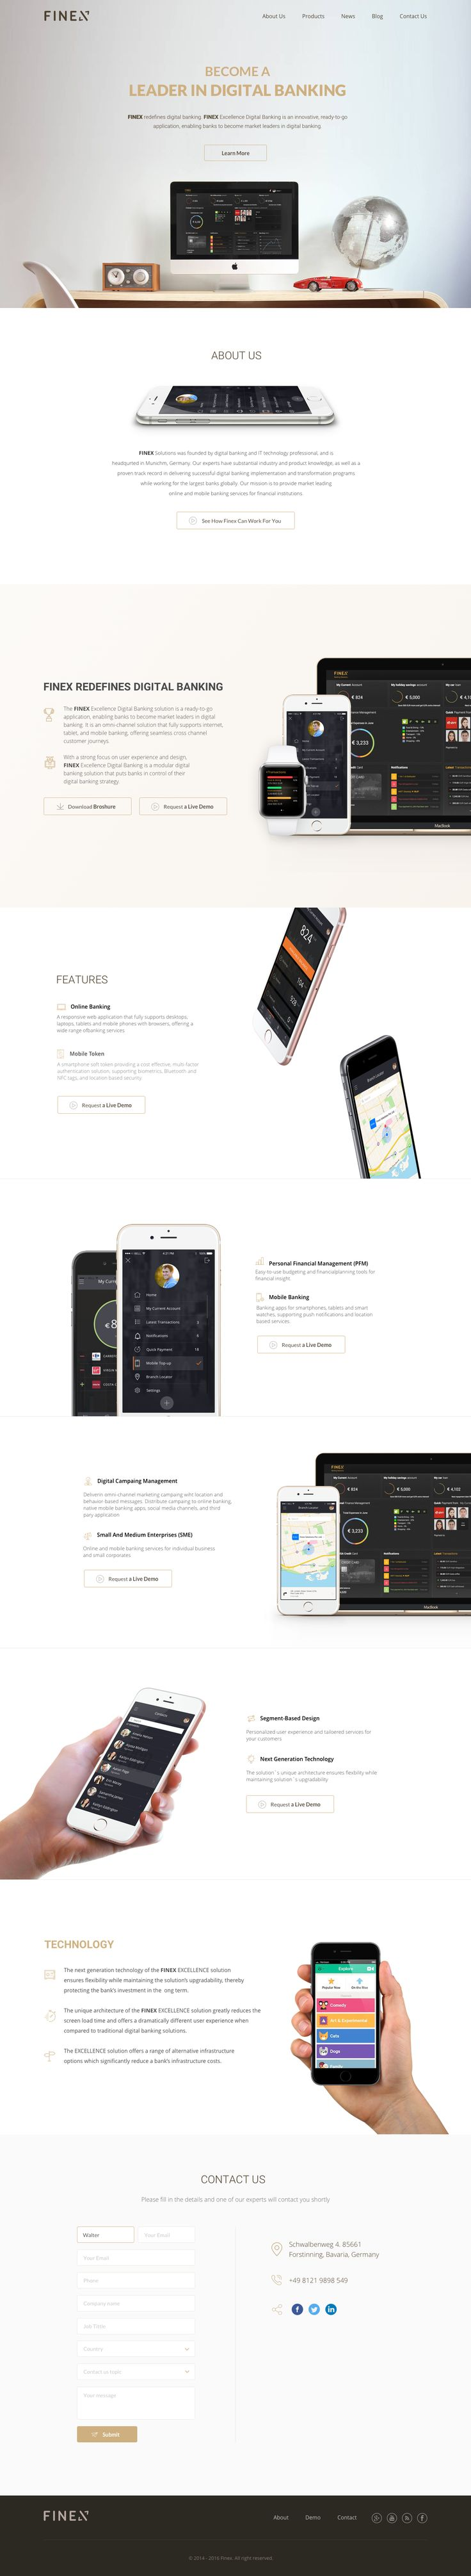 Real. The UX Blog podcast is also available on iTunes. 웹사이트